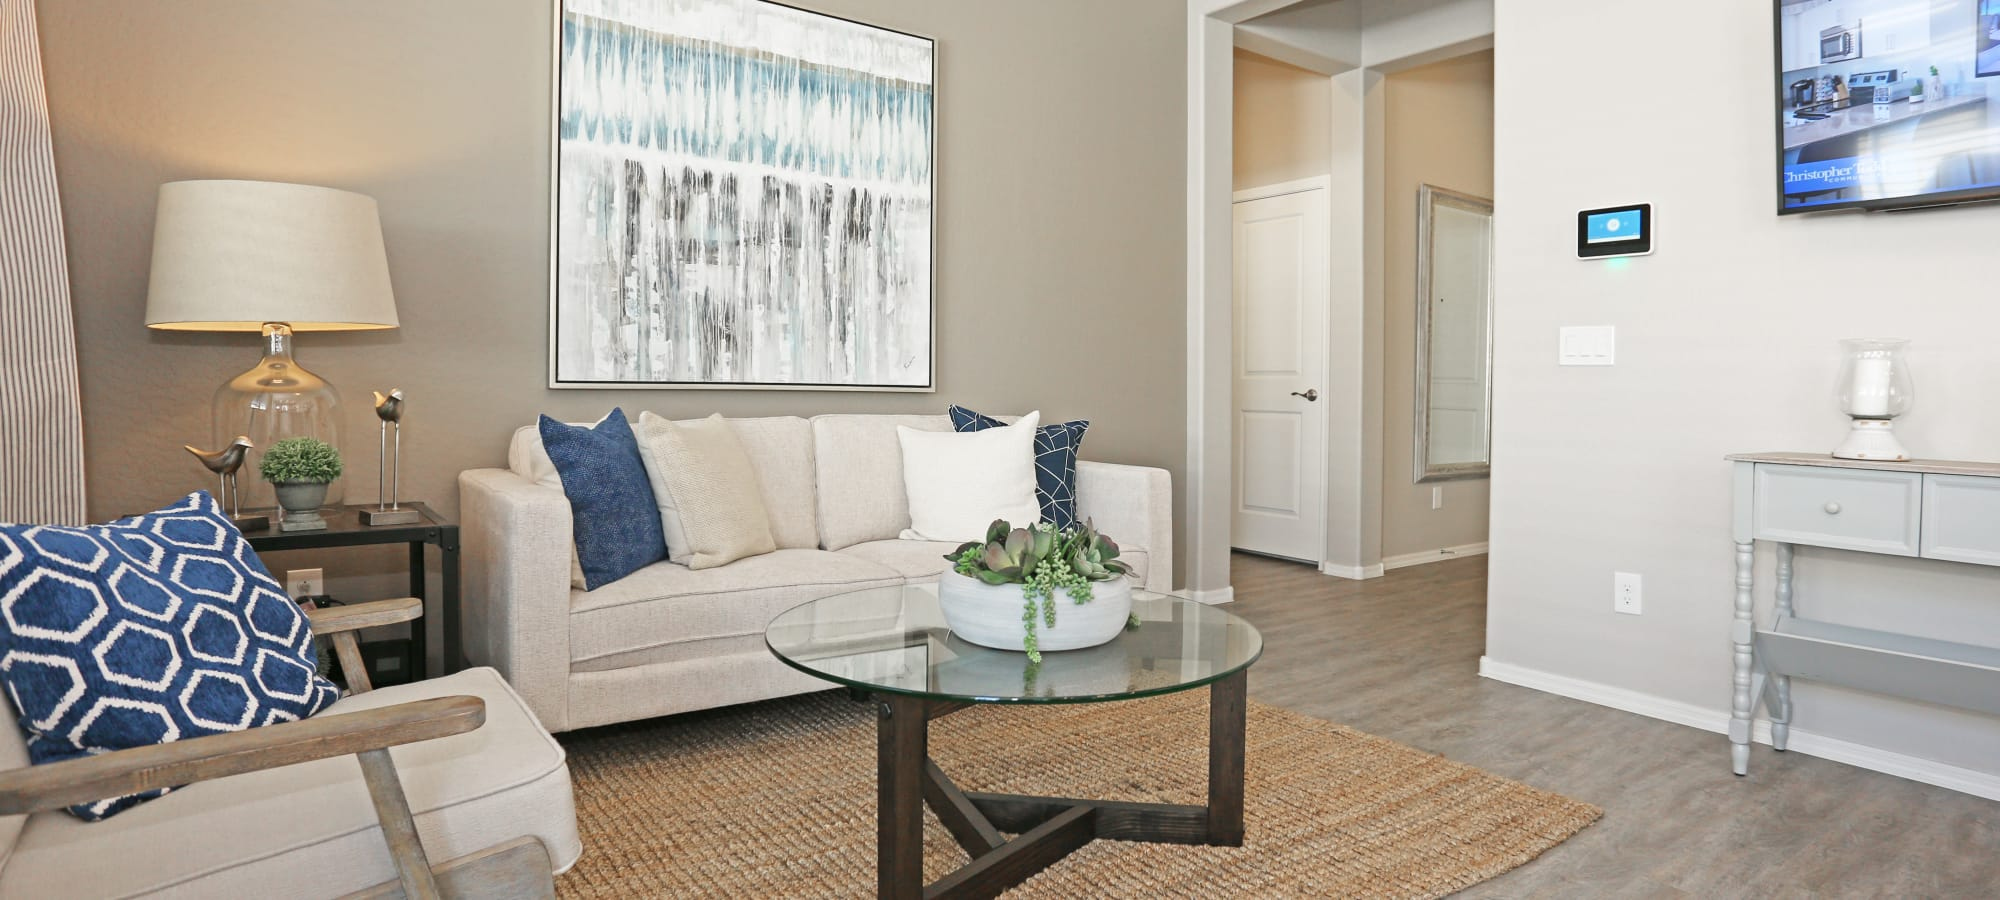 Comfortably decorated living area in model home at Christopher Todd Communities At Stadium in Glendale, Arizona